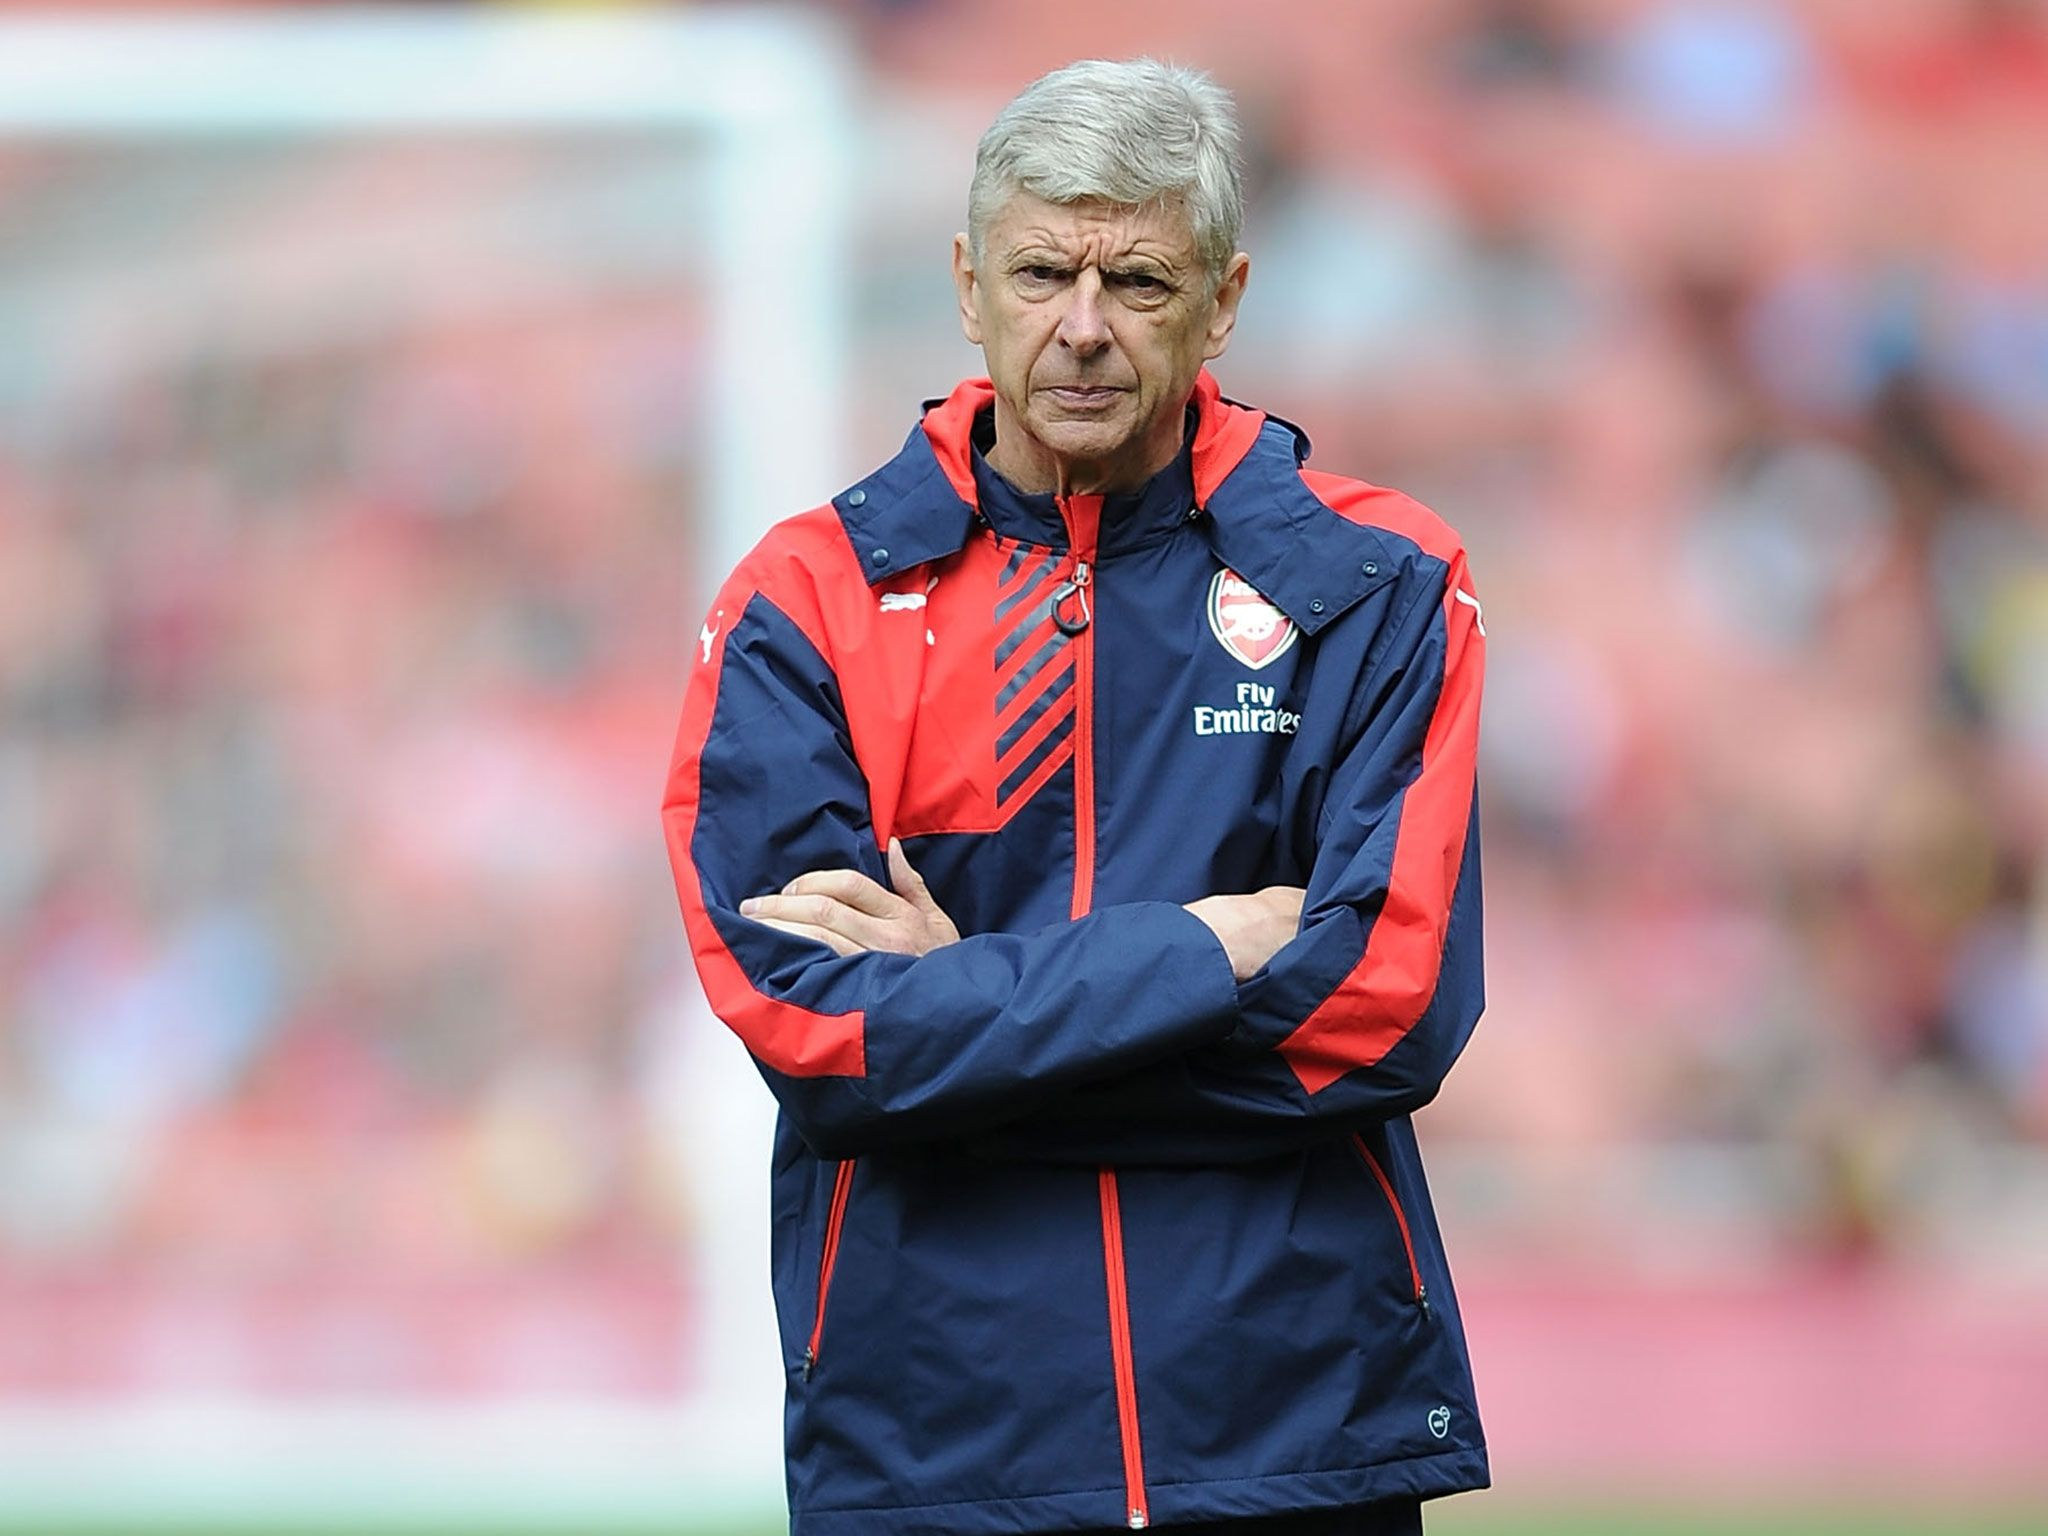 Wenger urges Arsenal fans to back team, not seek new